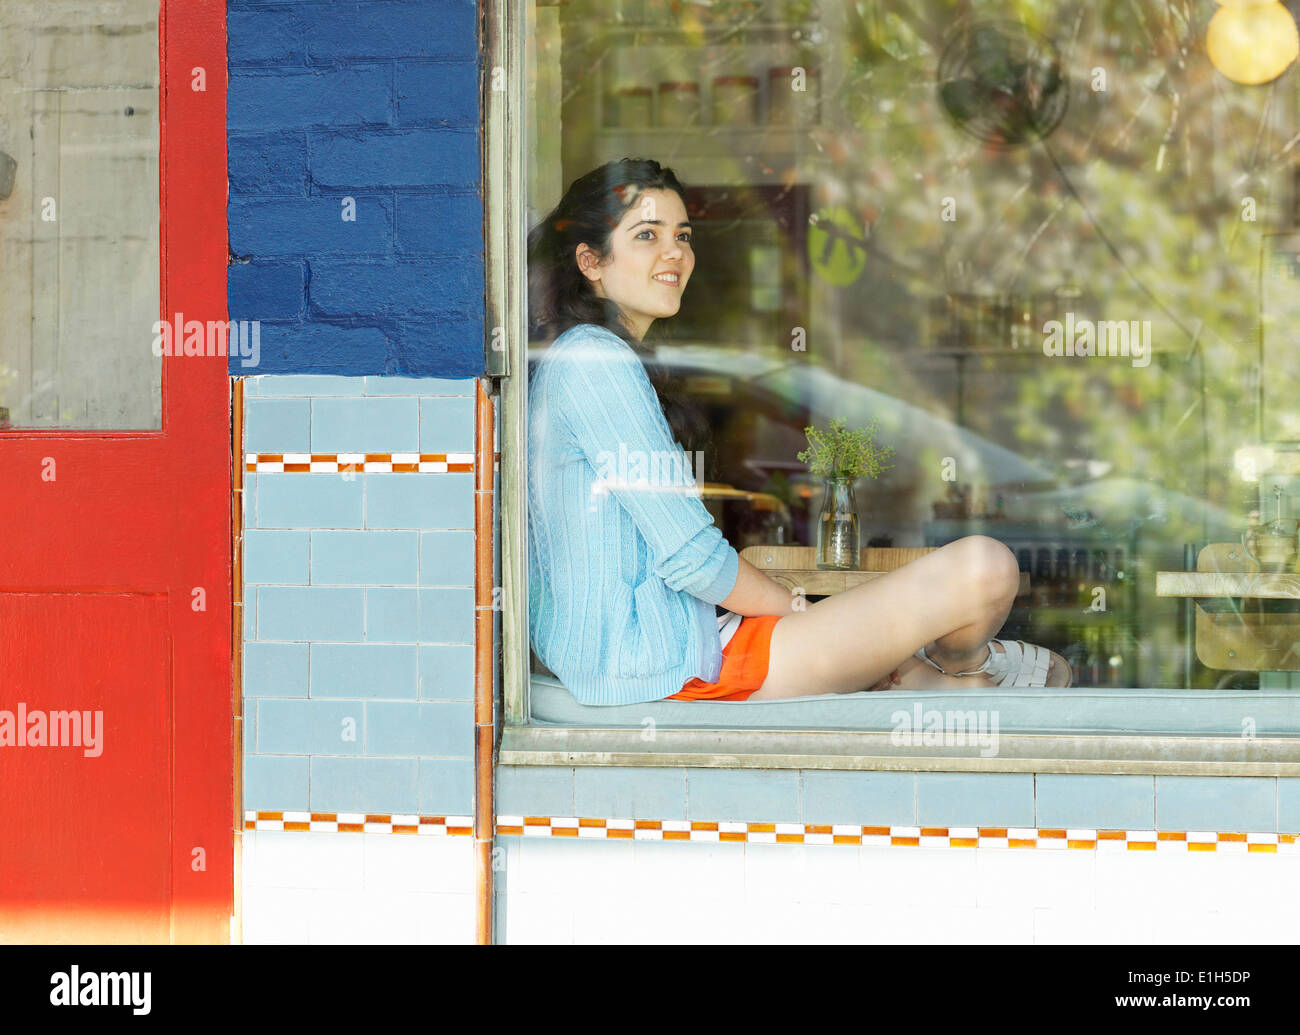 Young woman looking out of cafe window - Stock Image